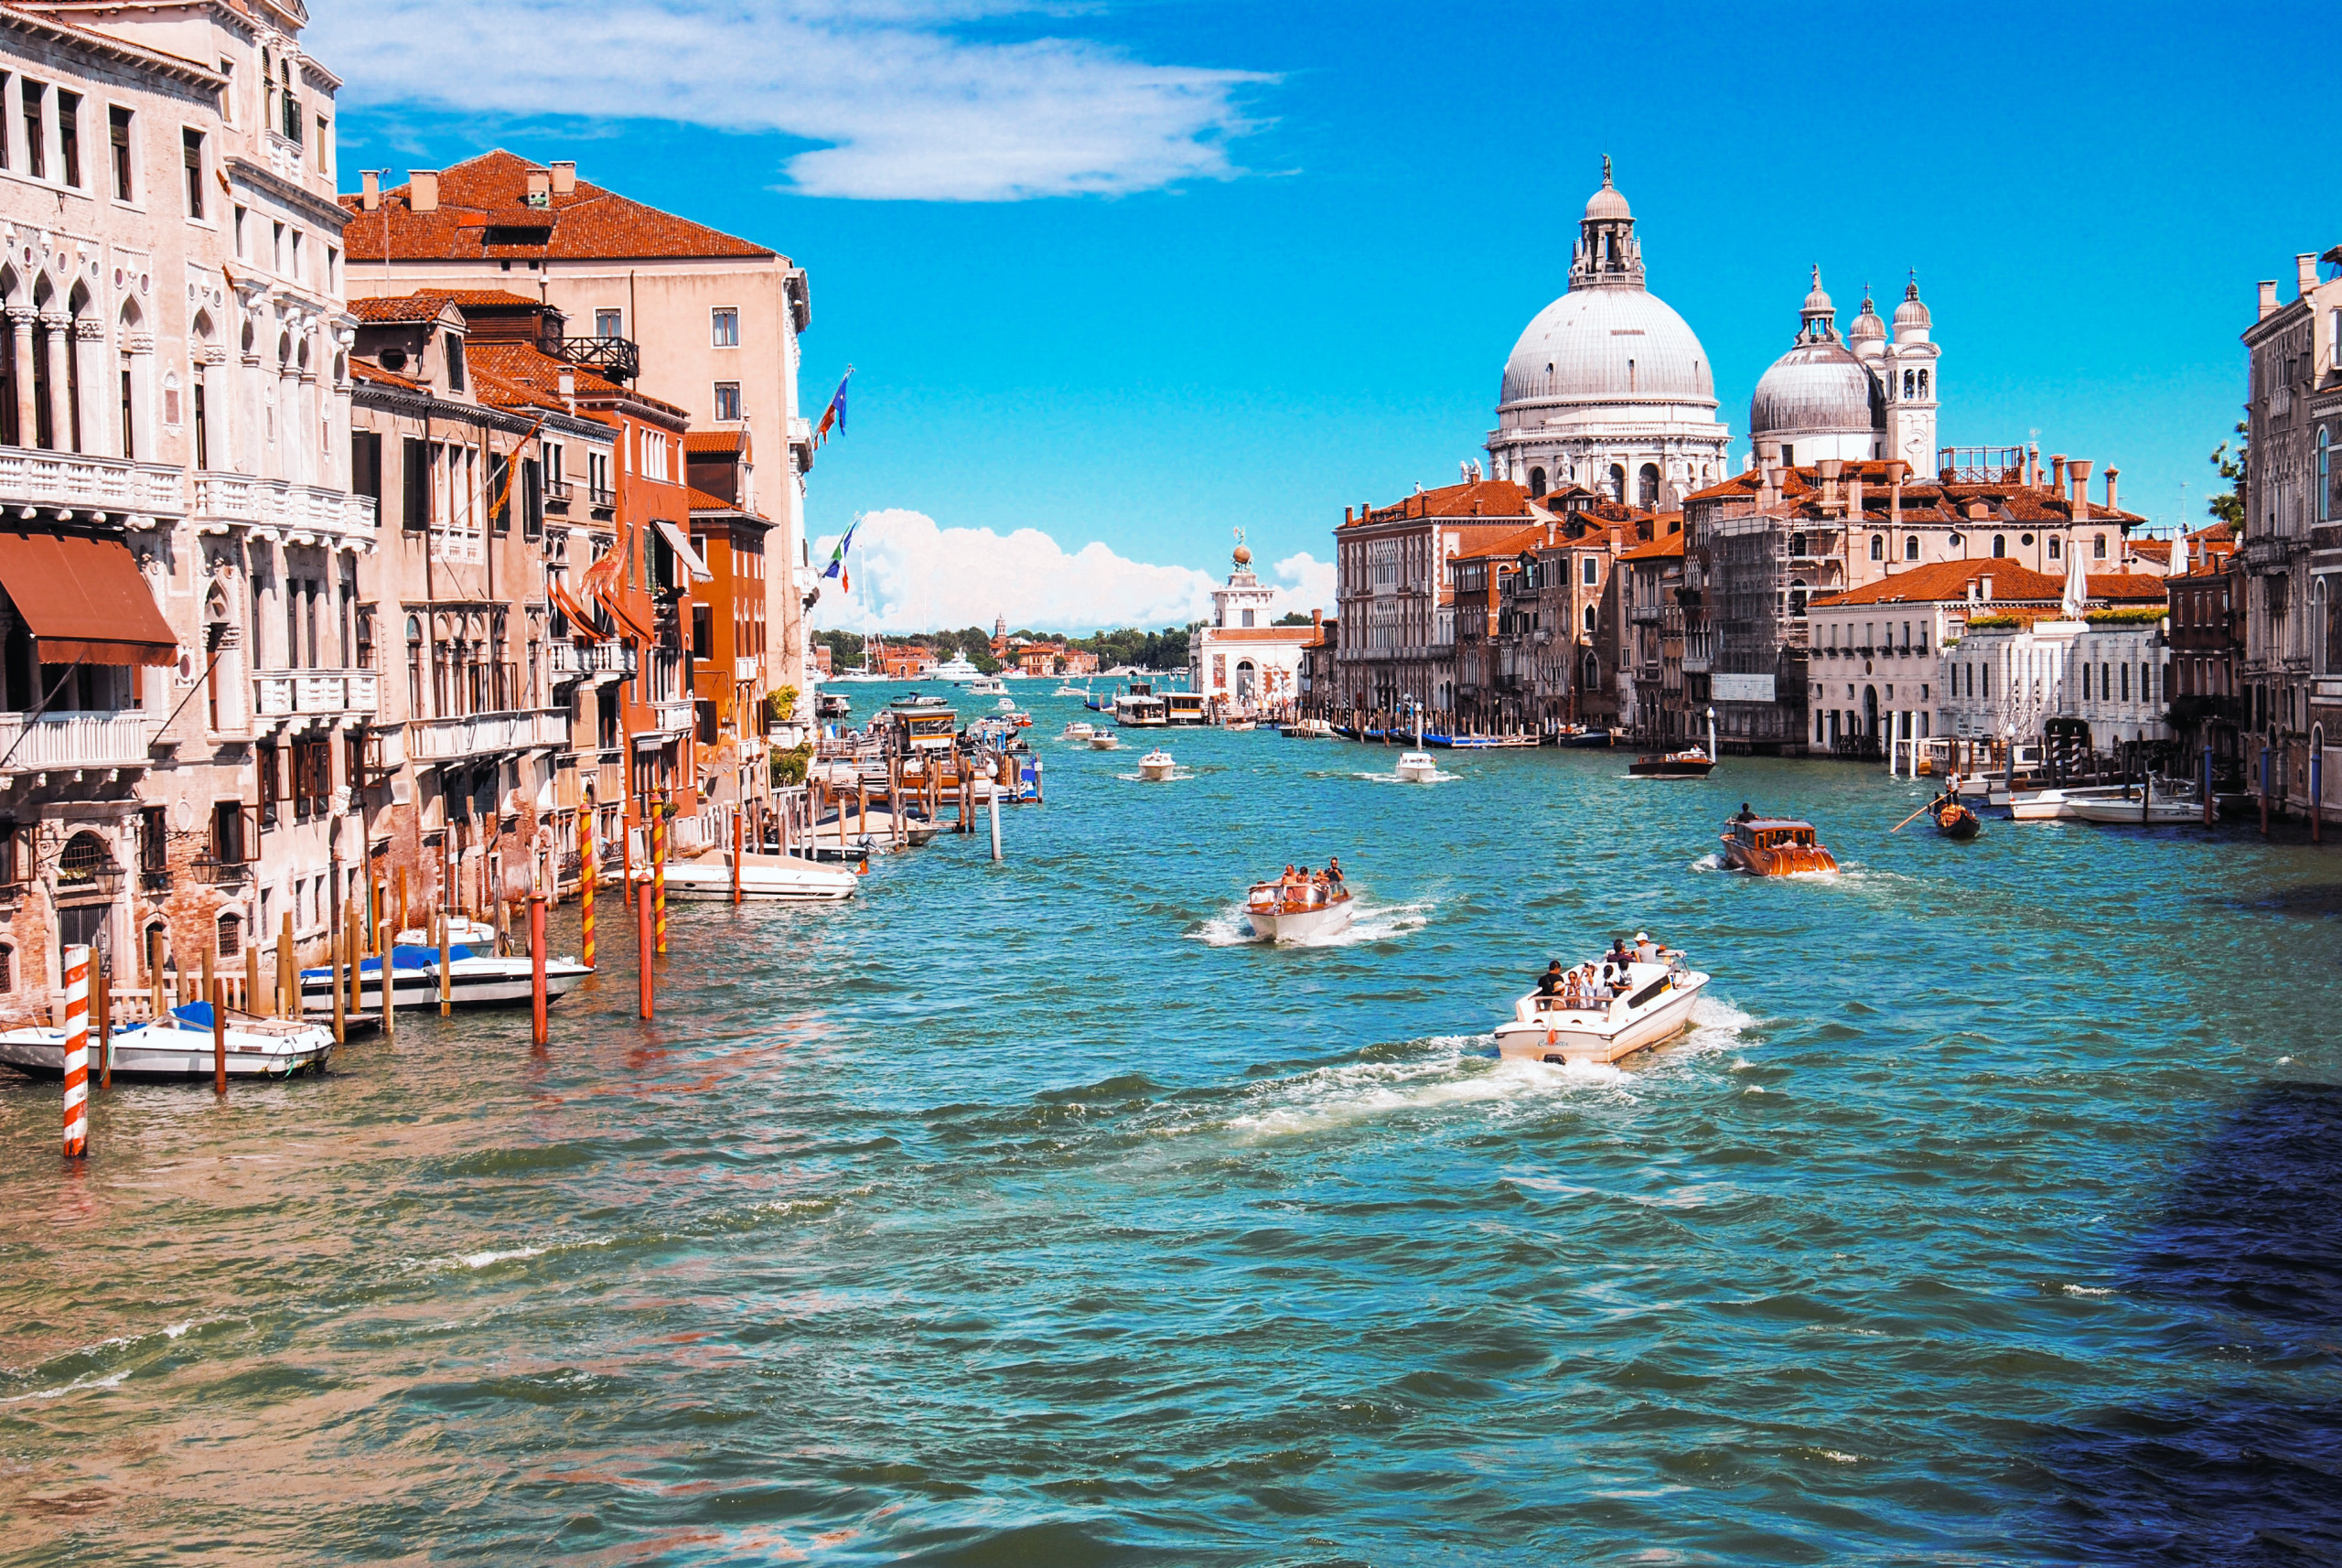 image of canal grande